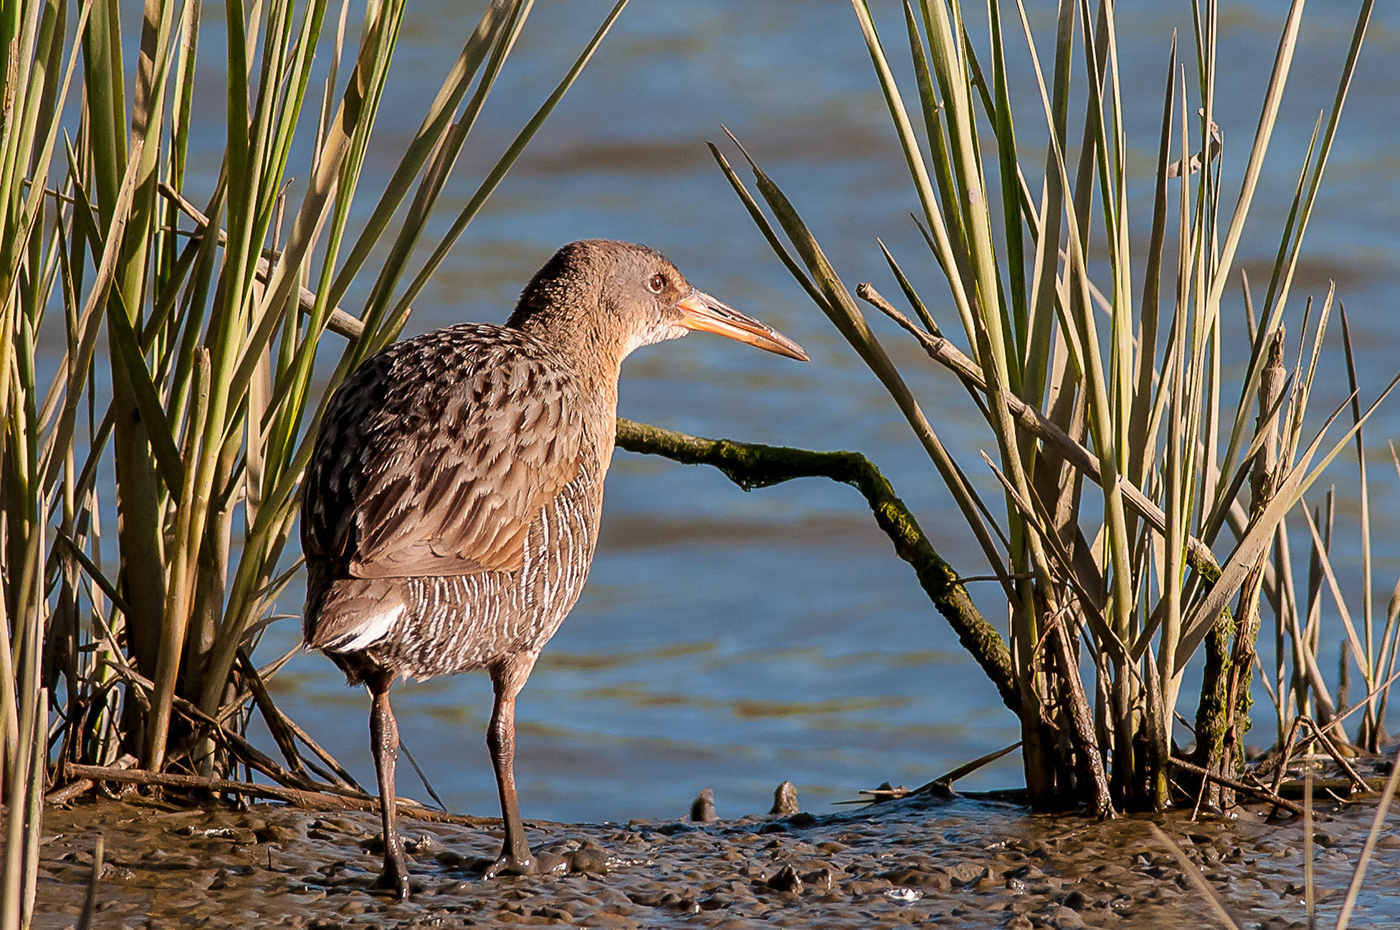 brown and white, long-beaked shorebird stands on edge of water, spiky green plant bunch on either side of it